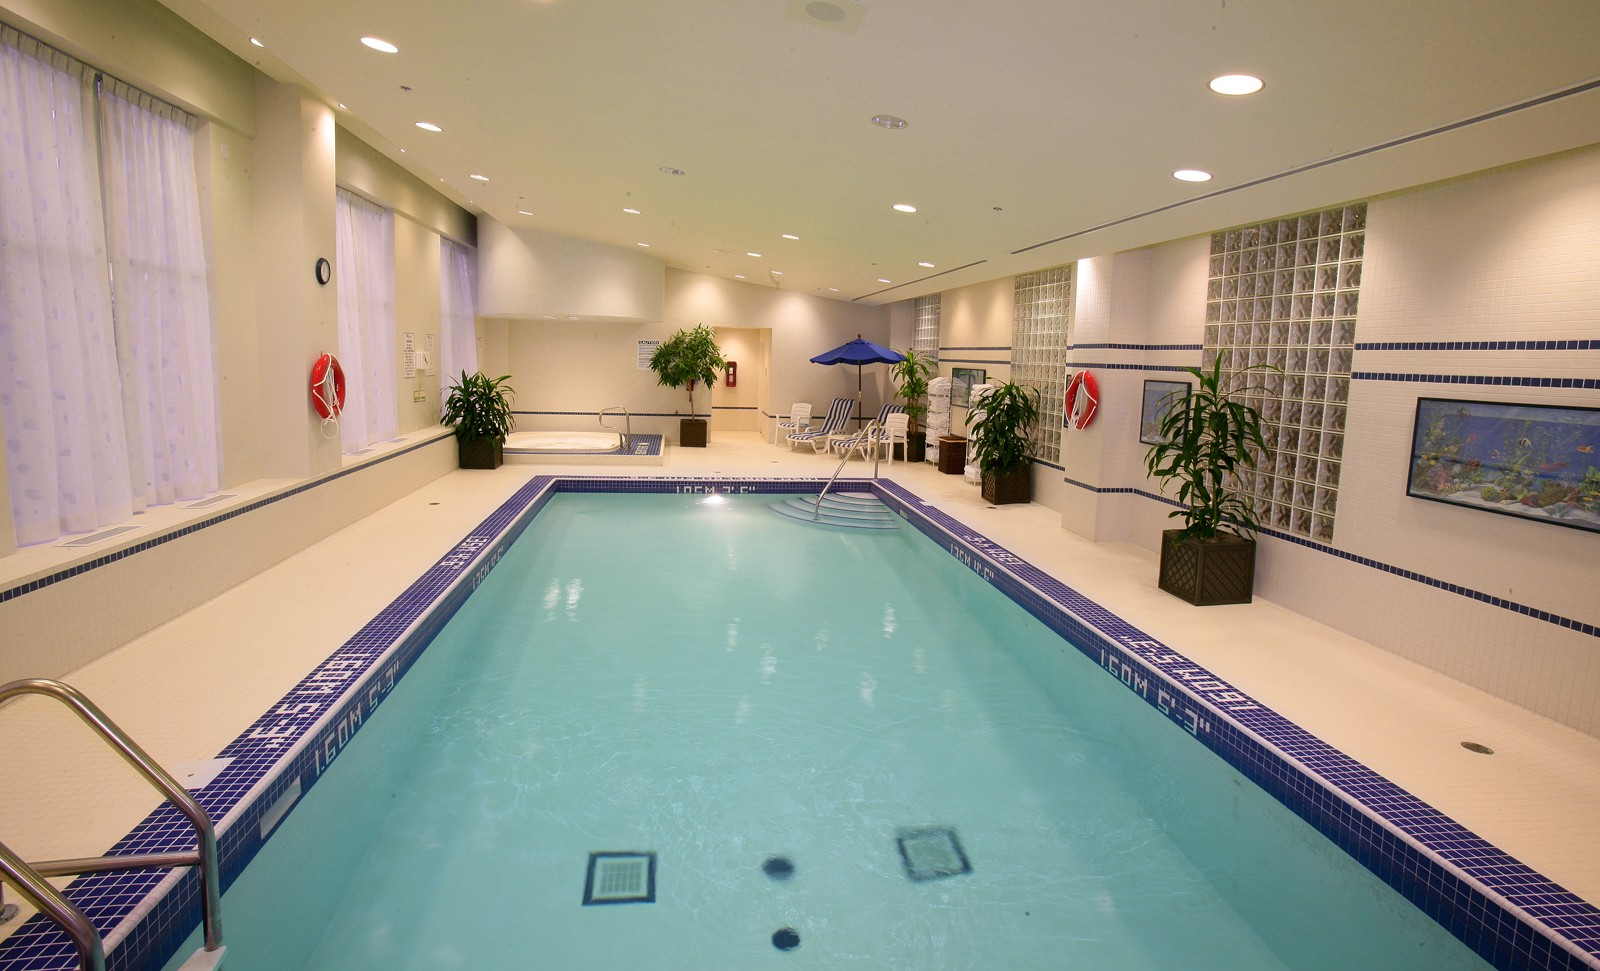 Hilton garden inn toronto markham experience york region for Swimming pools downtown toronto